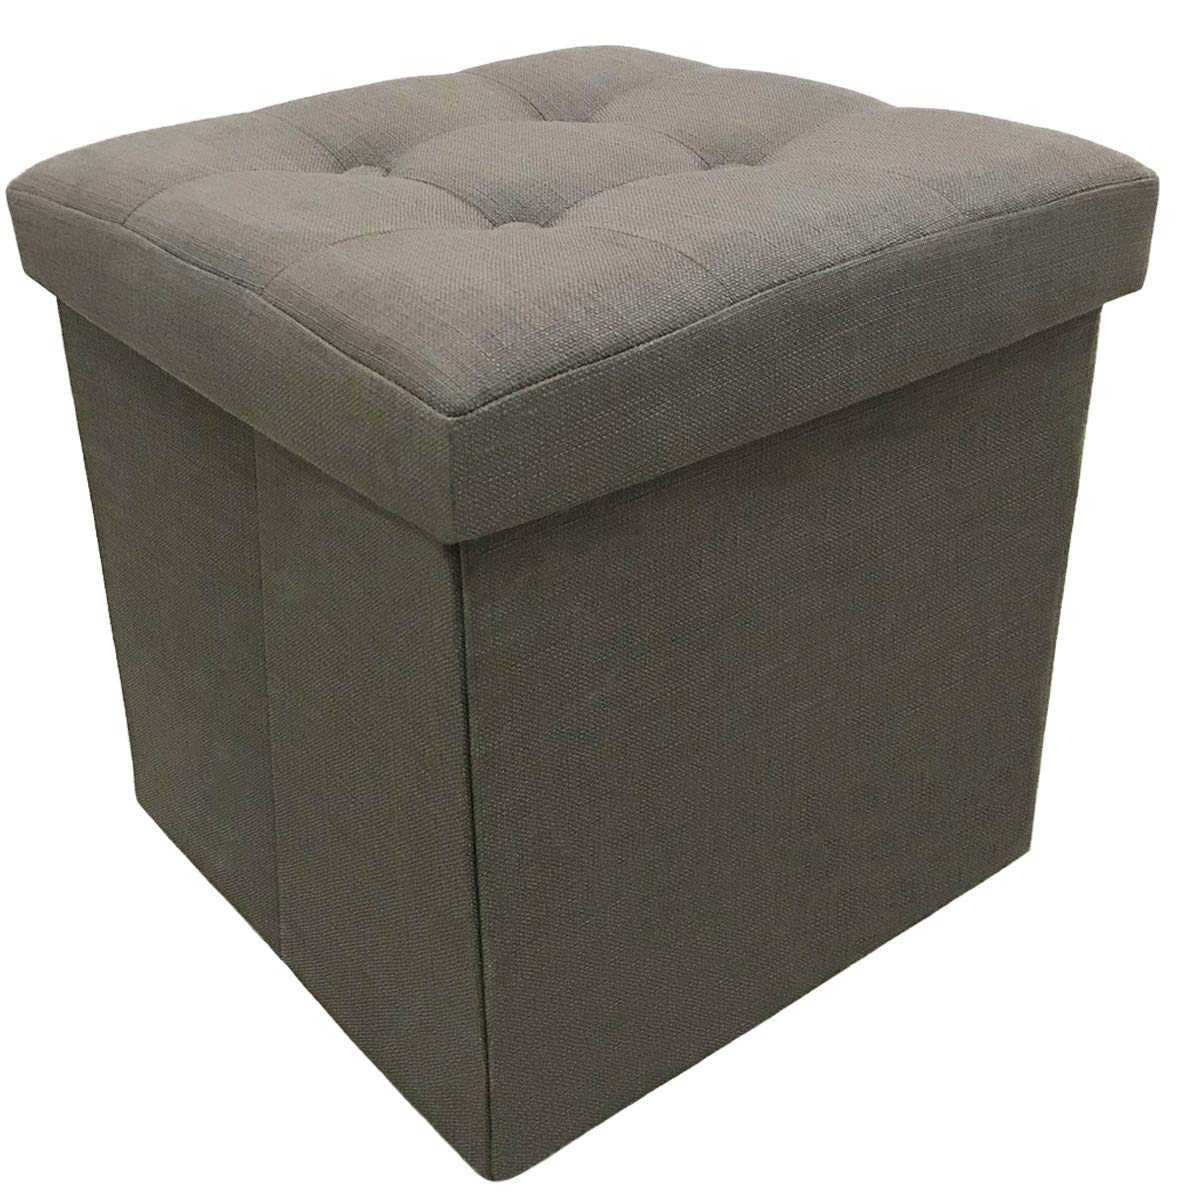 CC EFIND Storage Cube Ottoman Seat Foldable Footstool Bench Collapsible Storage Chest Folding Stool Linen Gray